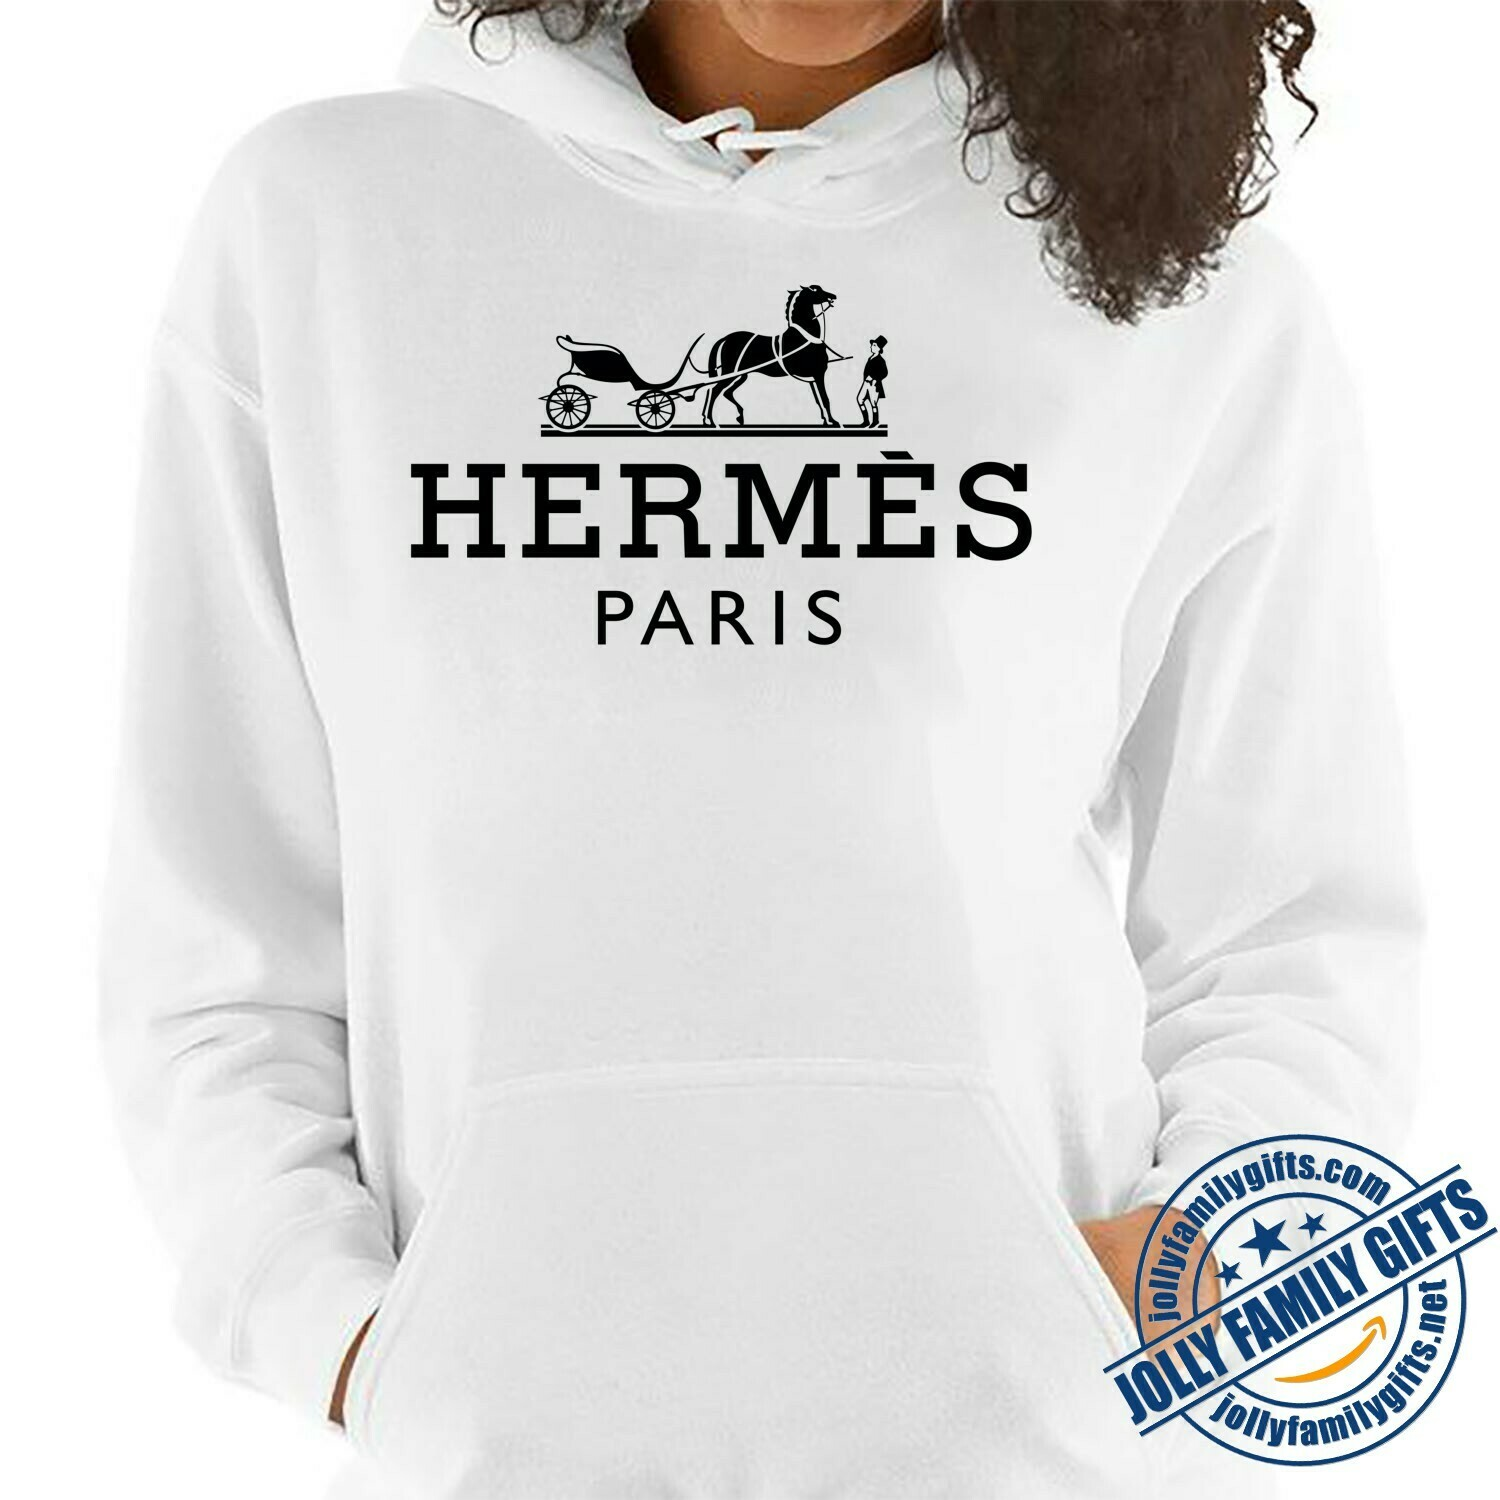 Classic Logo Hermes Paris Shirt Hermes T-shirt Hermes Logo Fashion Hermes Design Fashion Shirts for Women Men vintage shirt Unisex T-Shirt Hoodie Sweatshirt Sweater for Ladies Women Men Kids Youth